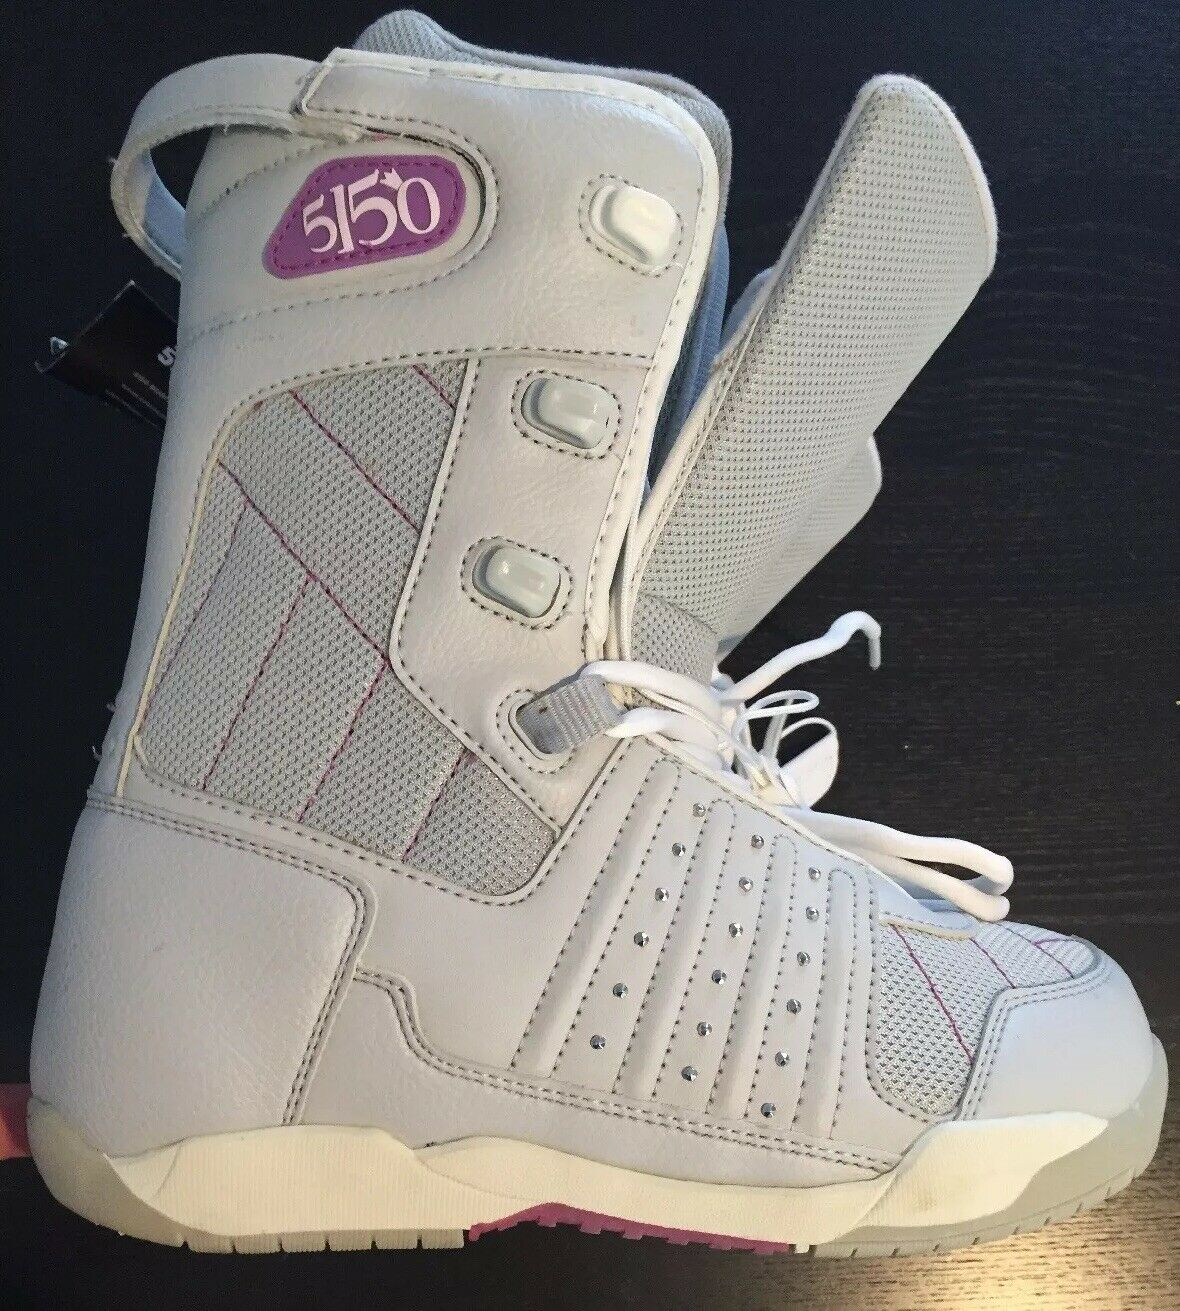 5150 Womens Snowboarding Boots Size 7 New